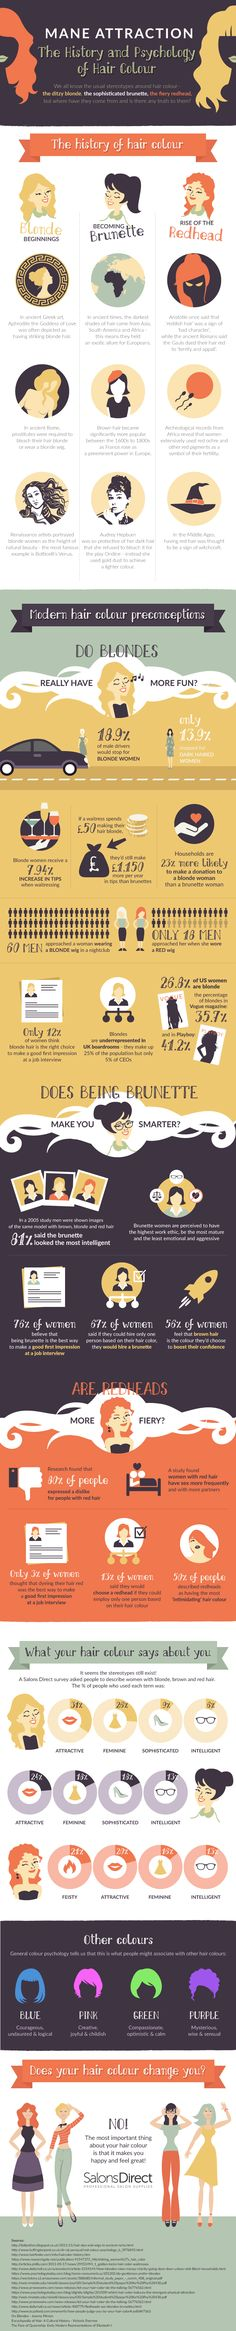 The Psychology Of Hair Color #Infographic #Beauty #Psychology #Hair